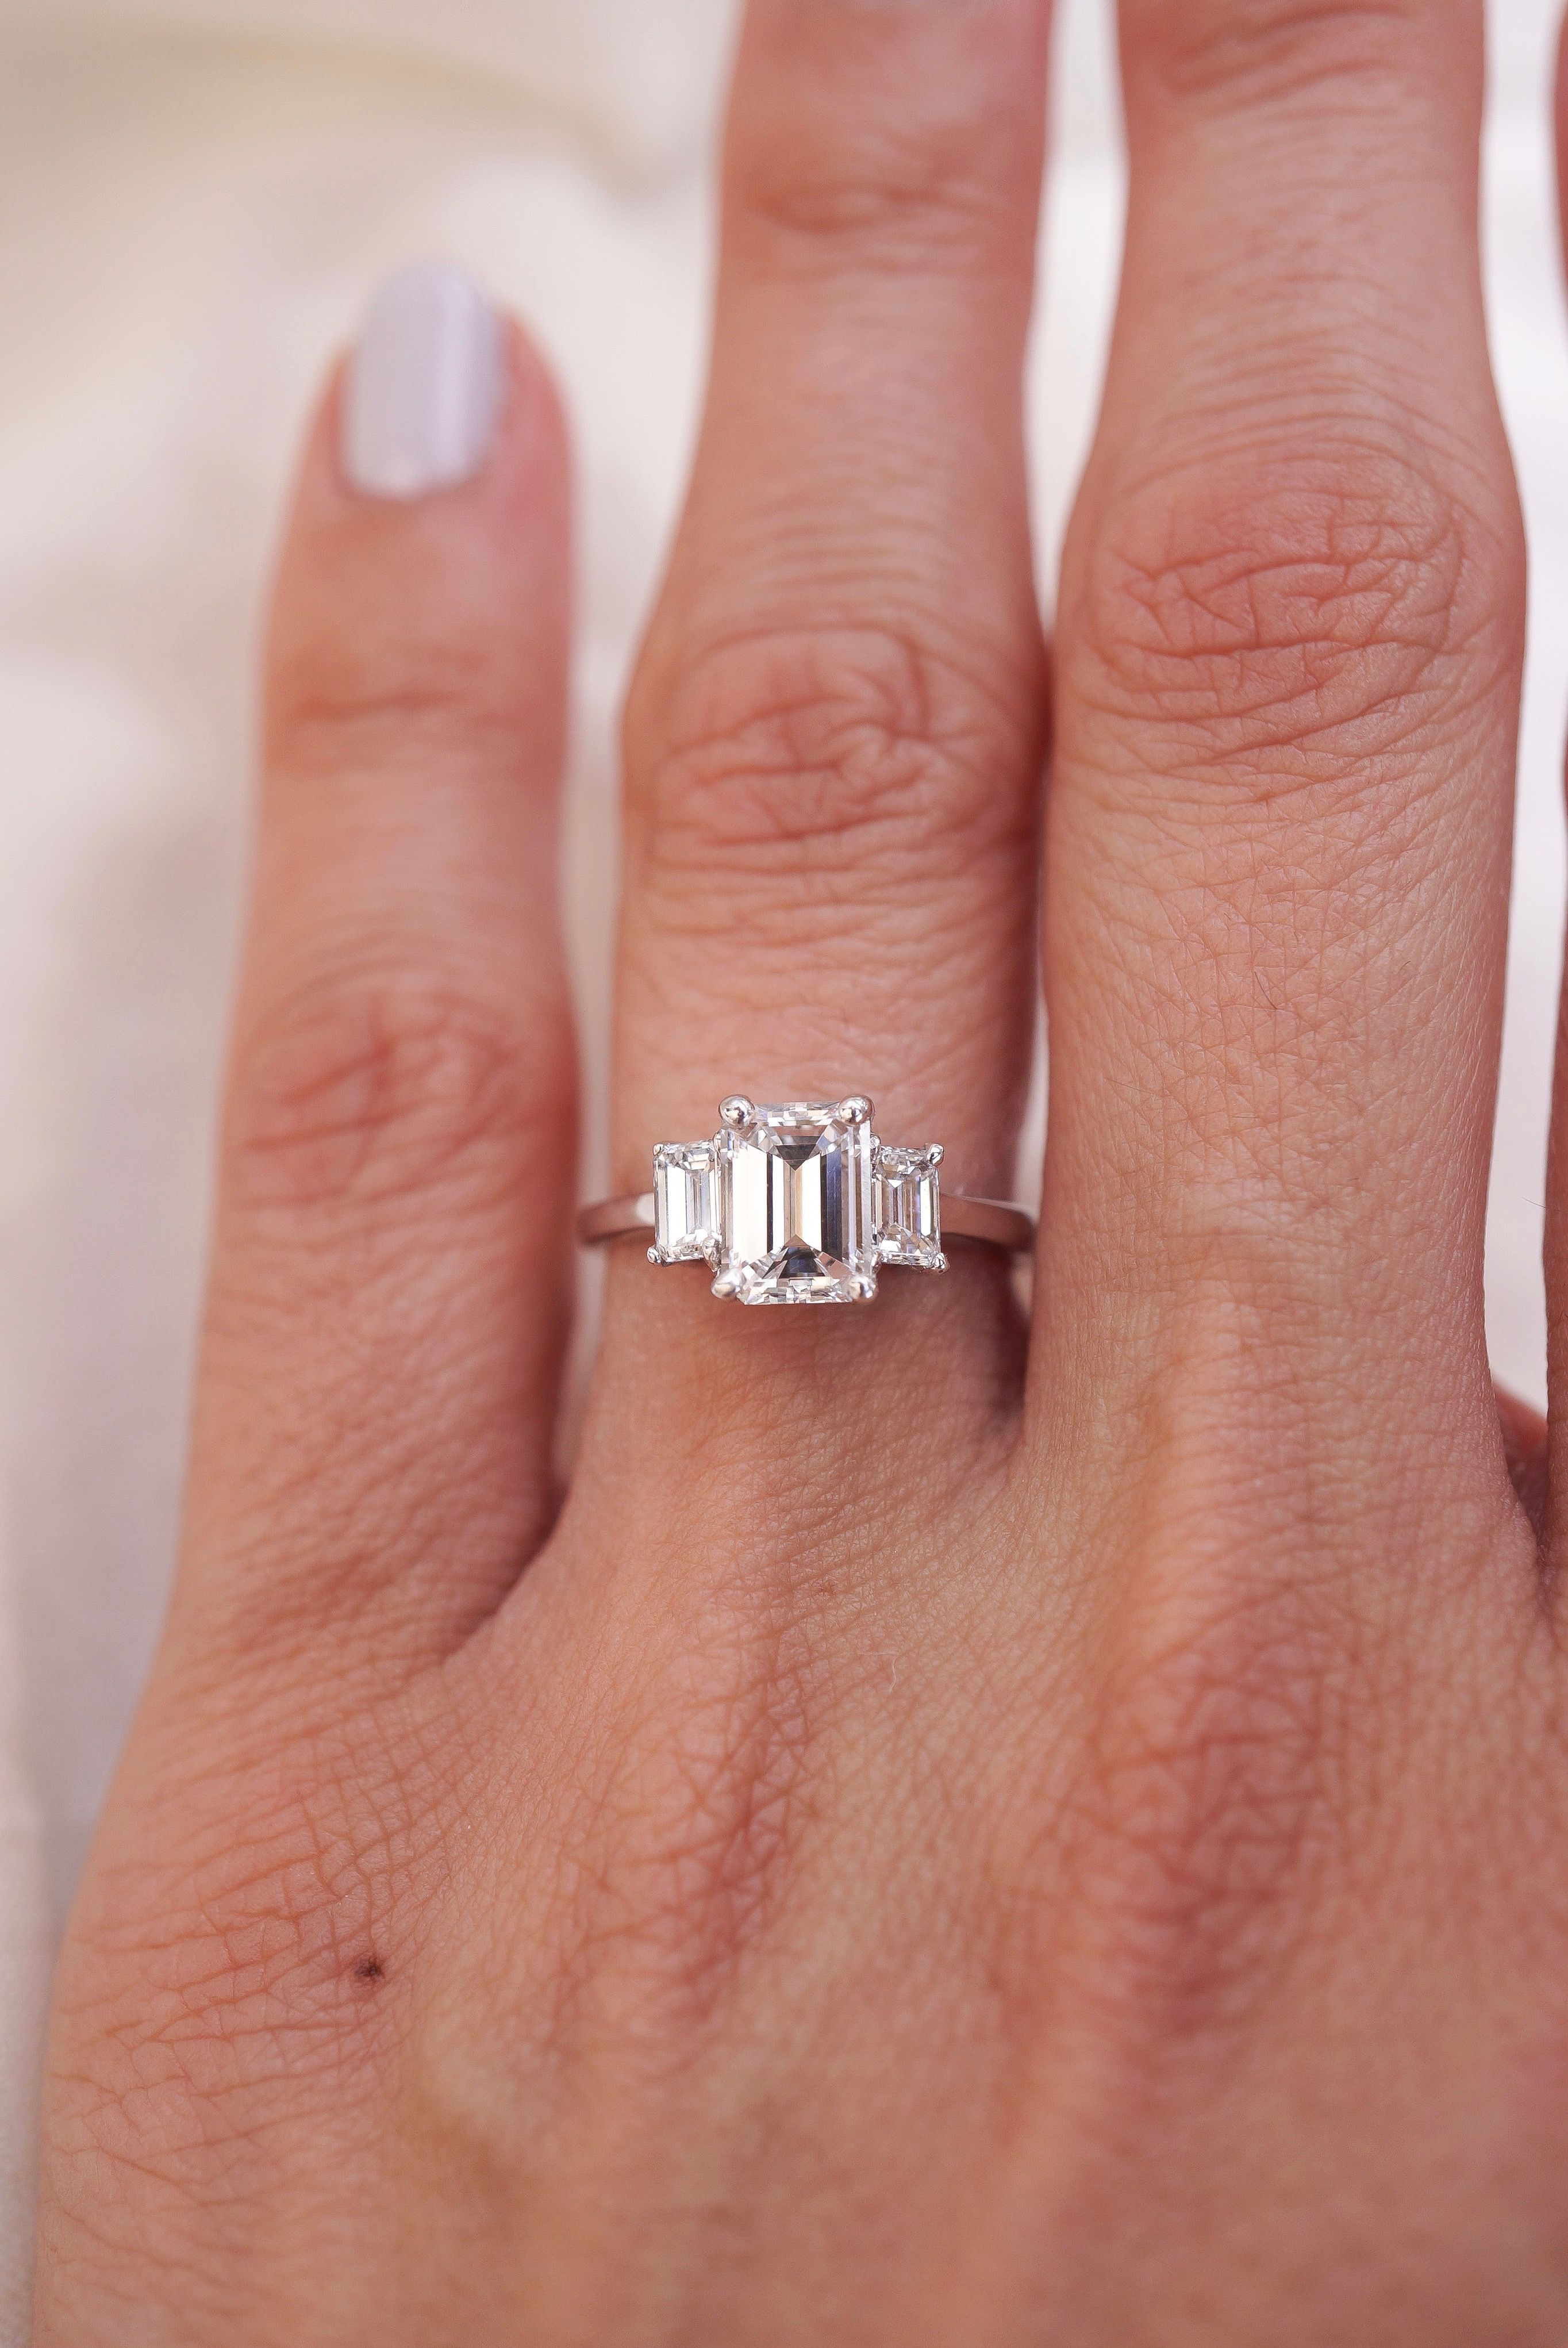 1 55cts Total Emerald Diamond Engagement Ring Engagementrings Emerald Ring Engagement Diamond Fine Engagement Rings Emerald Engagement Ring